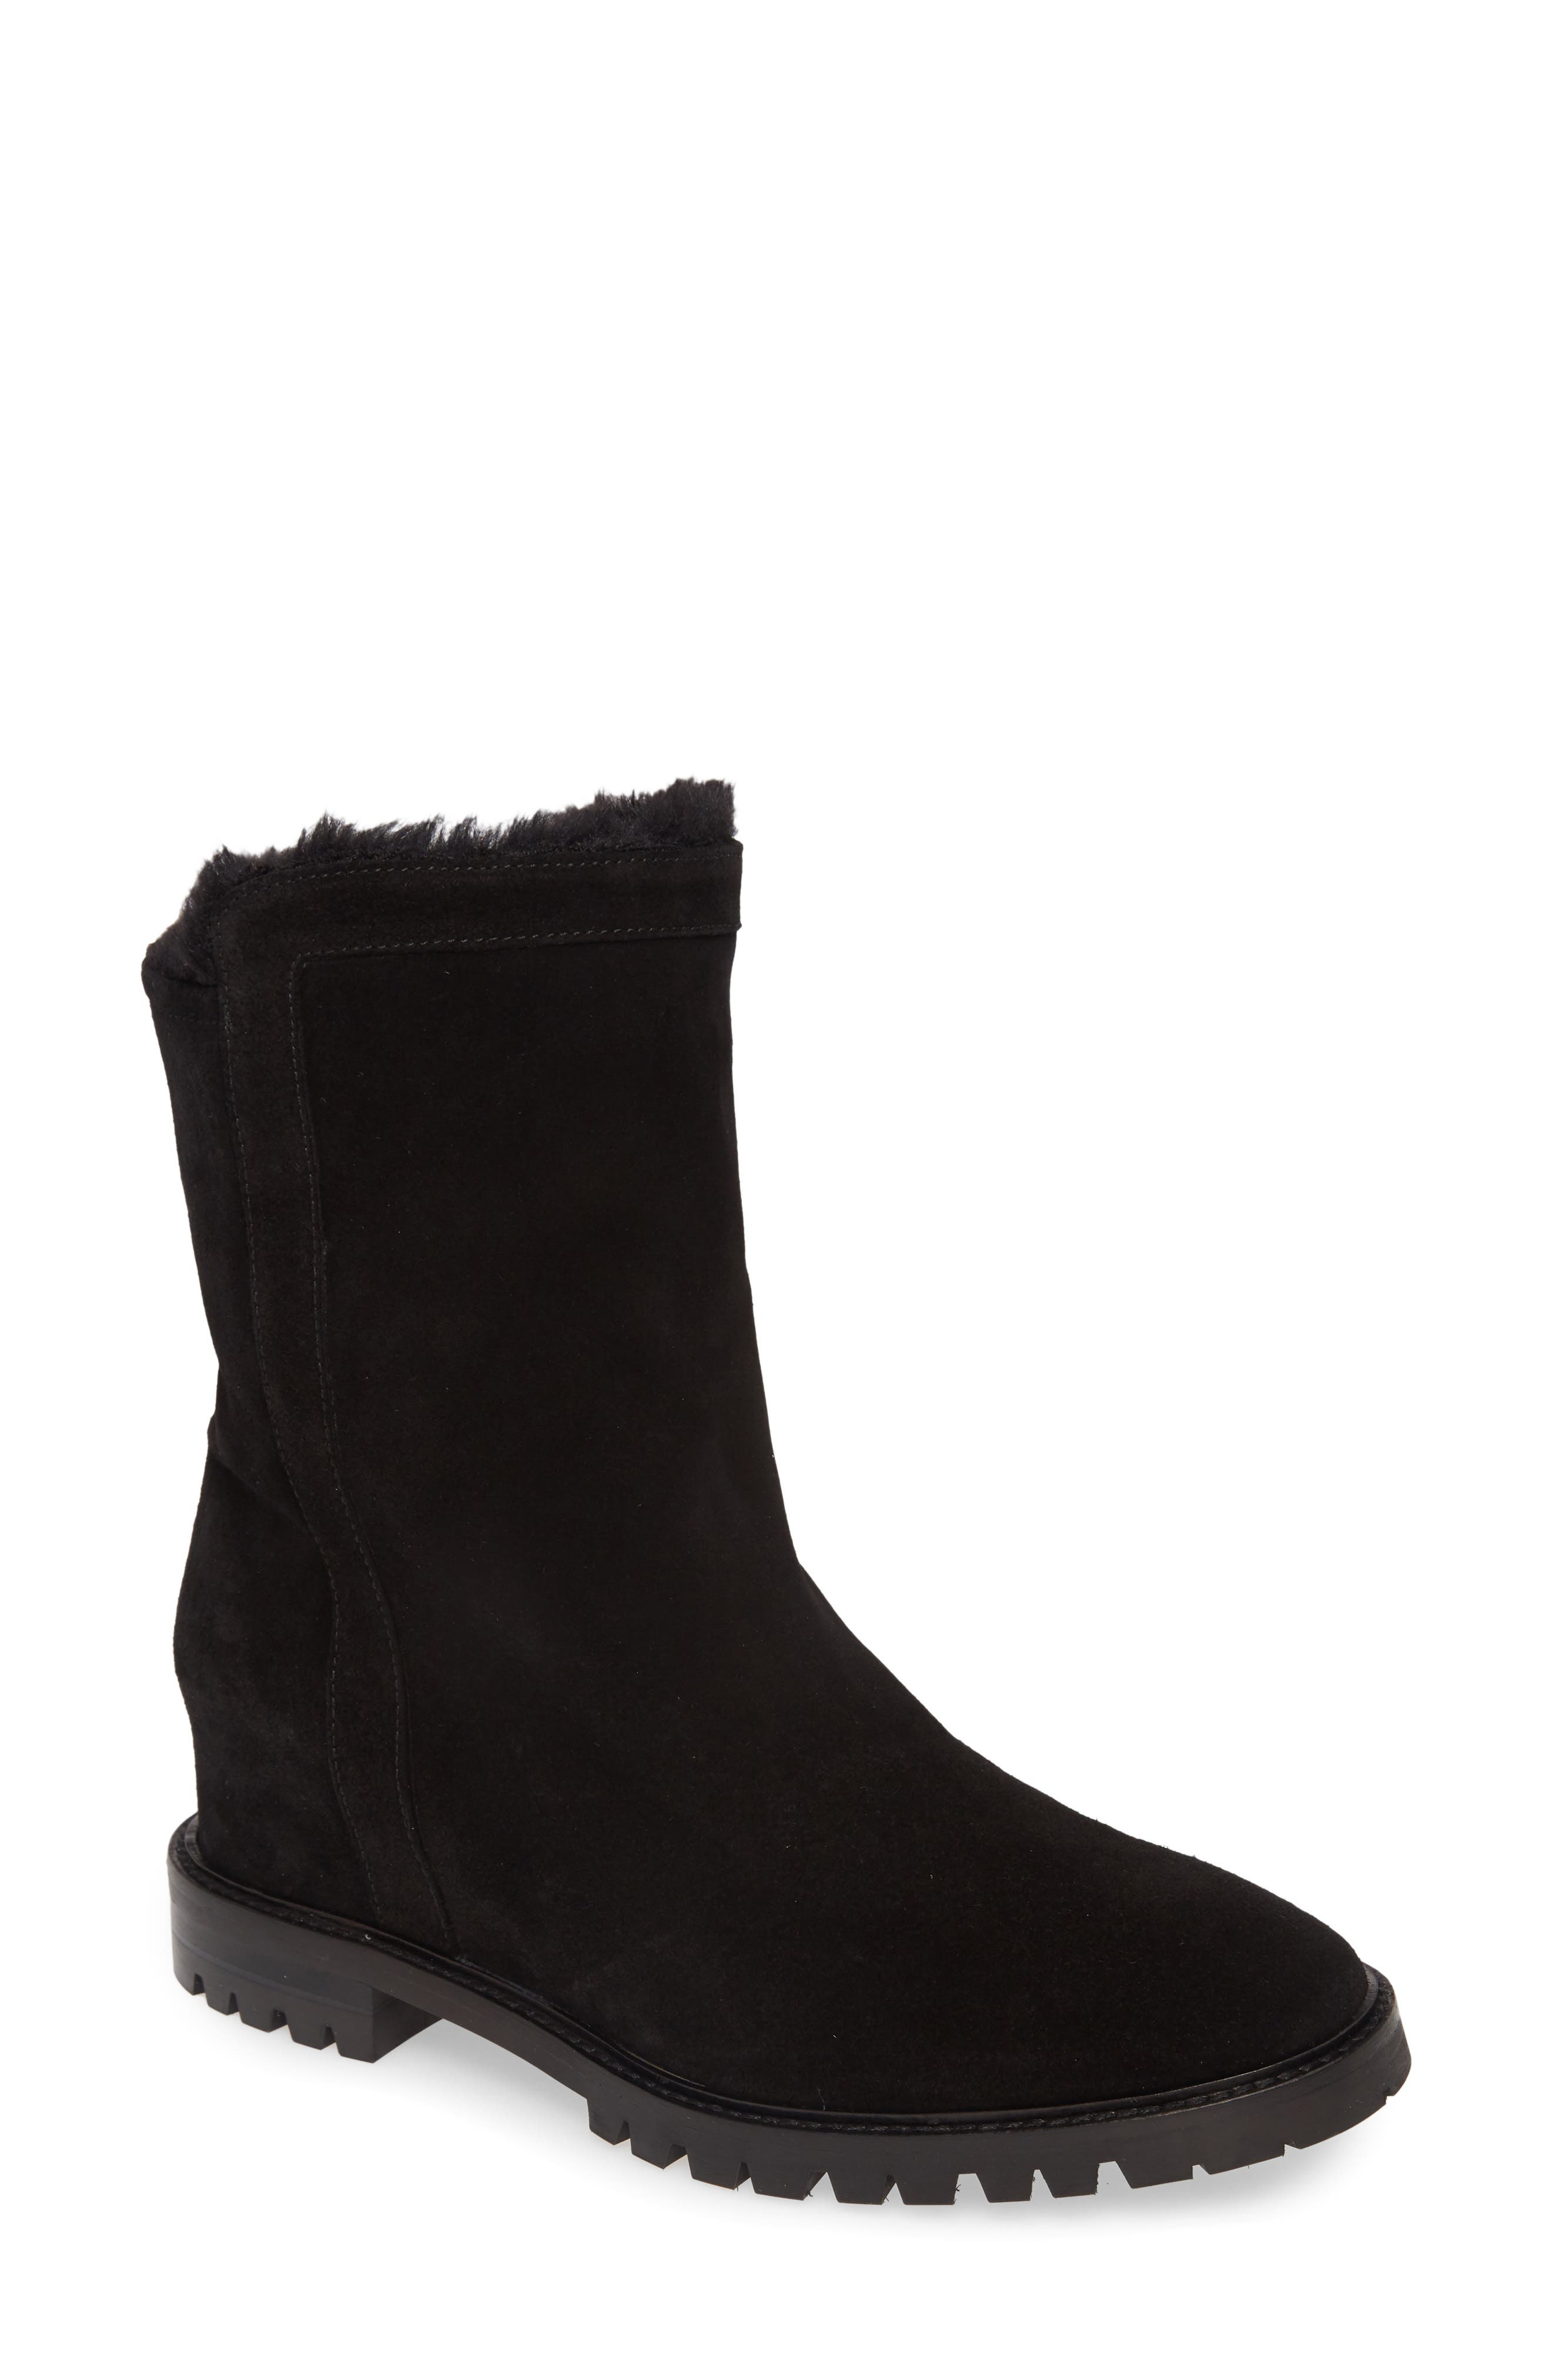 Image of Aquatalia Cate Faux Fur Lined Weatherproof Leather Boot